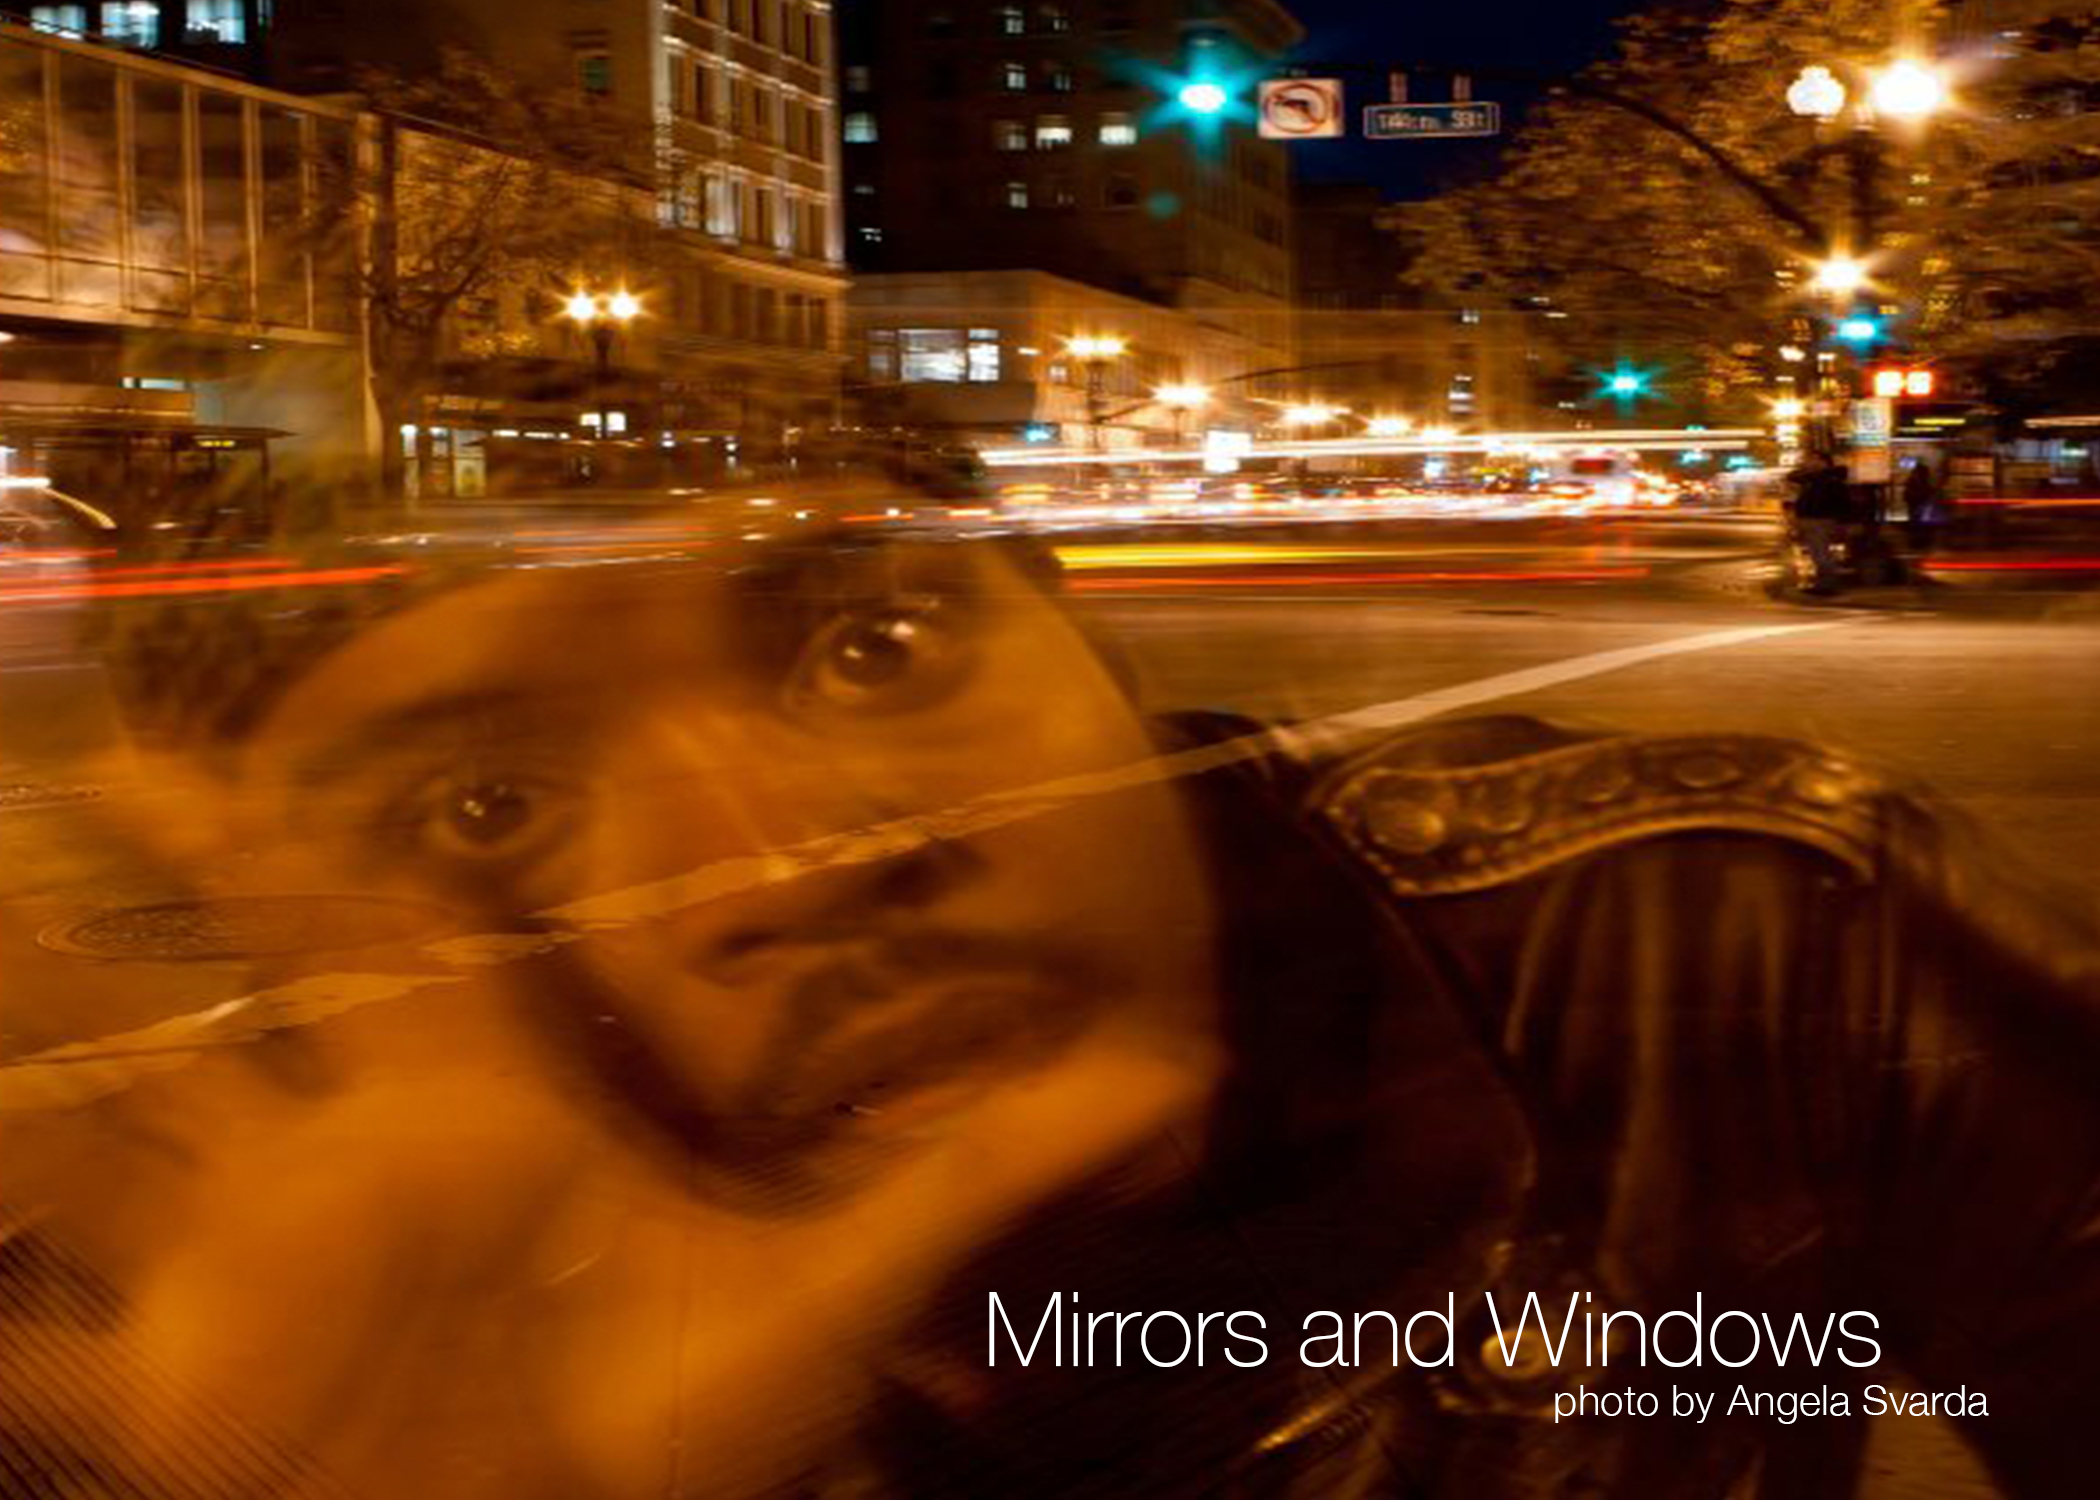 Are photographs mirrors? Windows? Perhaps they can be both.    In the 1970s, New York MOMA exhibited  Mirrors  and  Windows.  It was a influential exhibition and catalog and an attempt to define characteristics of  MIRRORS  and  WINDOWS  IN PHOTOGRAPHS. Are photographs reflections of the photographer or view on the world? A dialectic relationship was brought forth and examined.